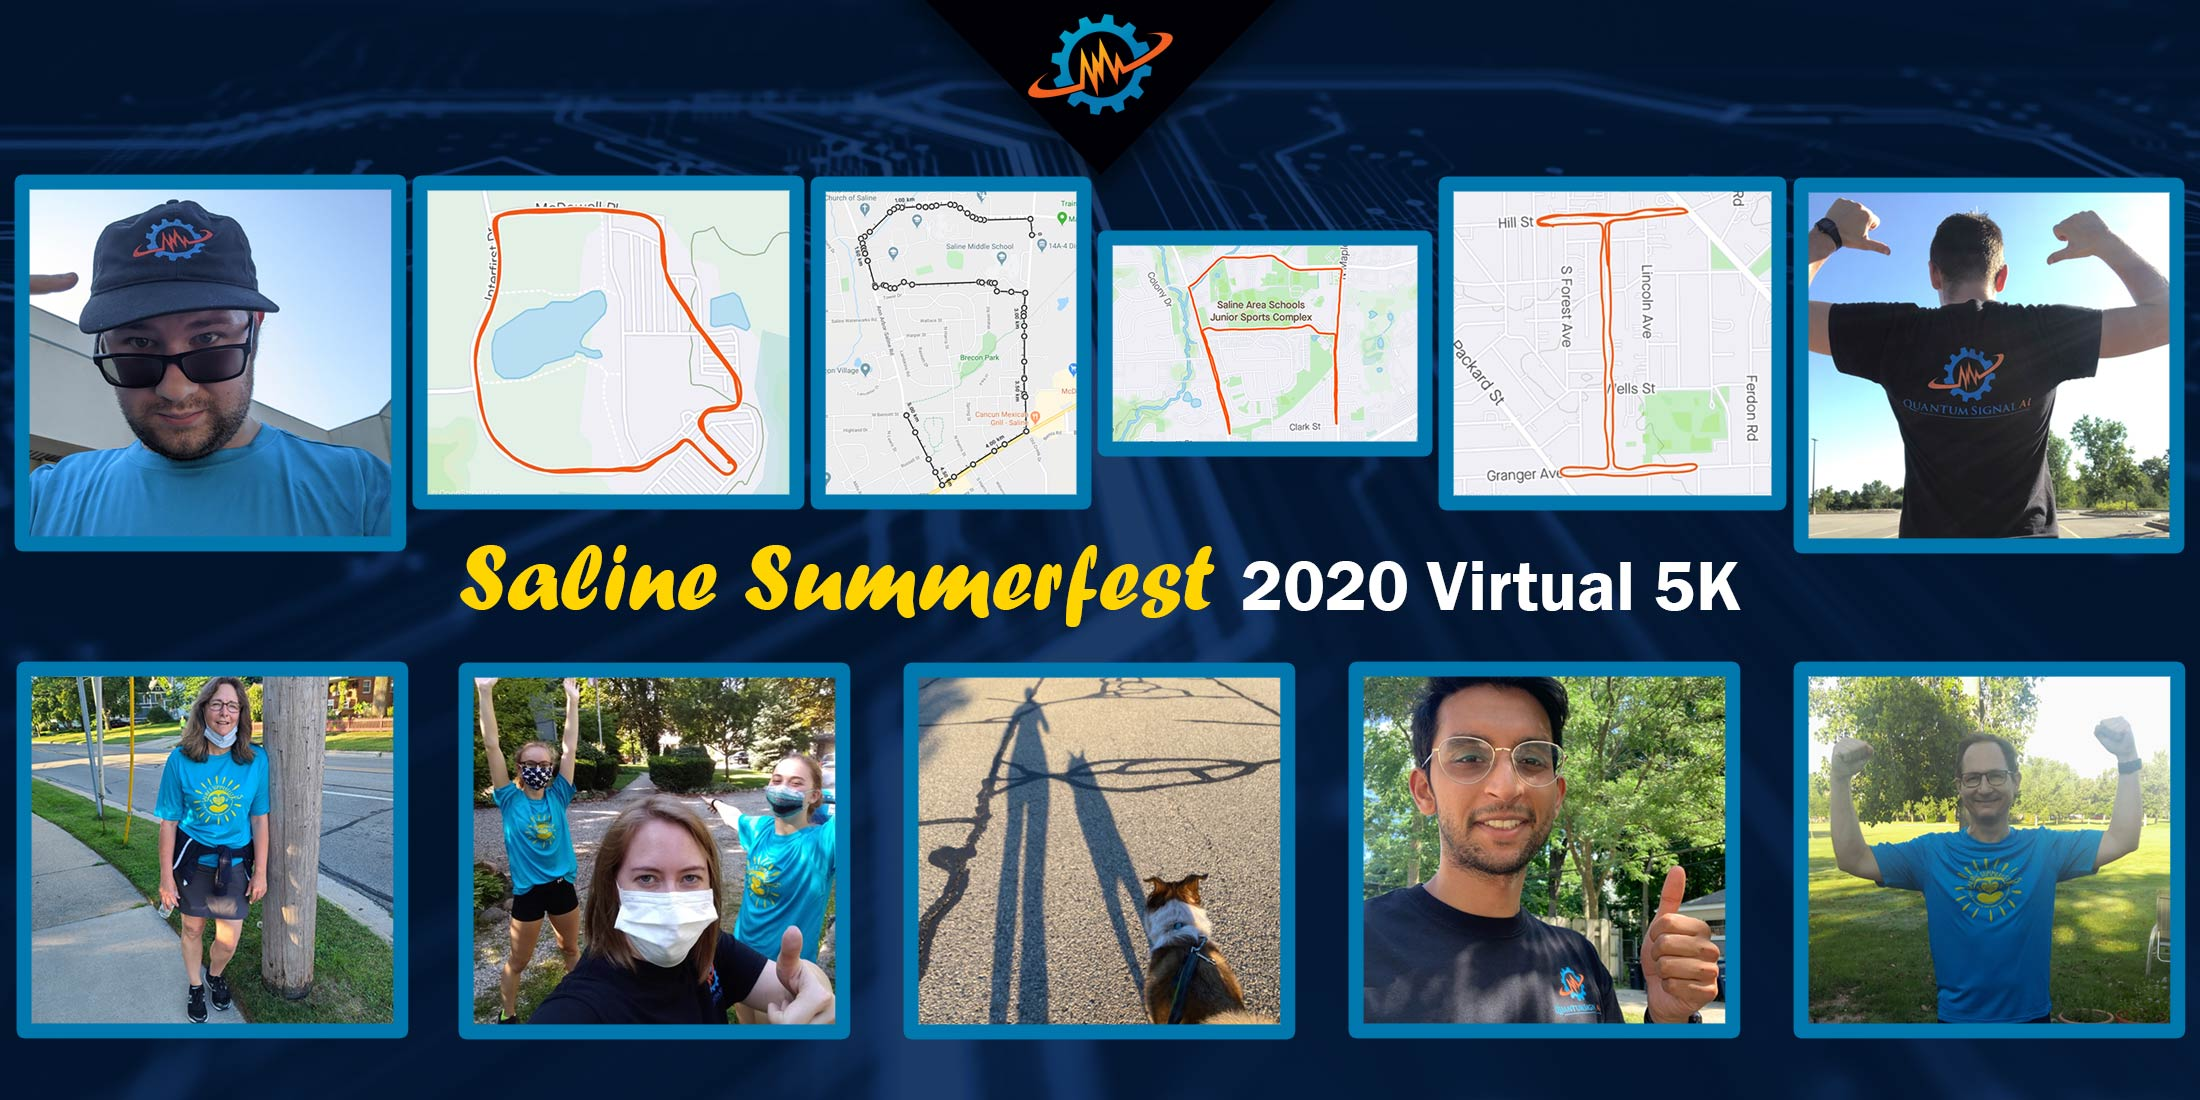 Saline Summerfest 2020 Virtual 5k selfies and race courses